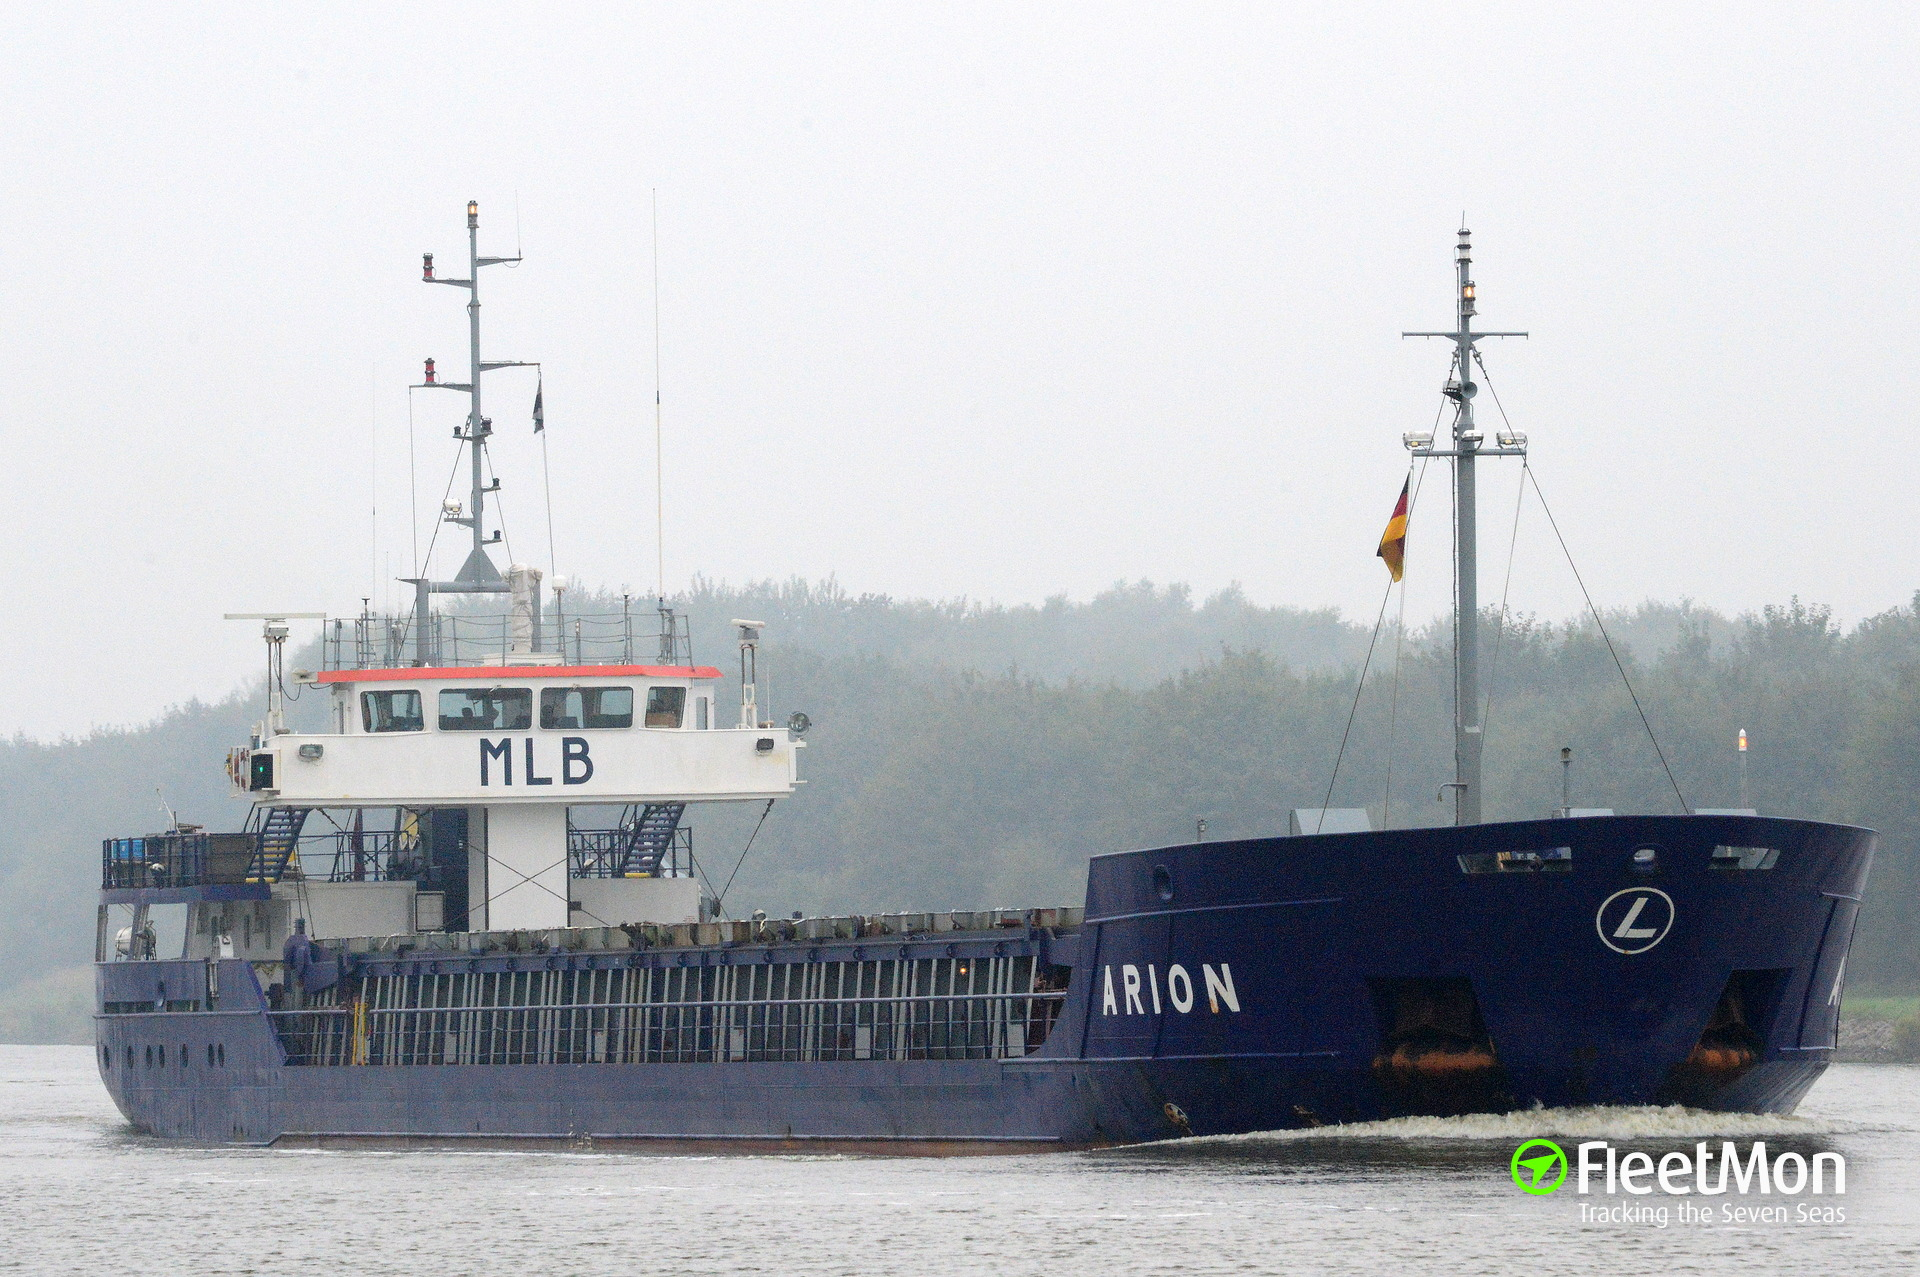 Arion collided with unidentified fishing vessel on Weser